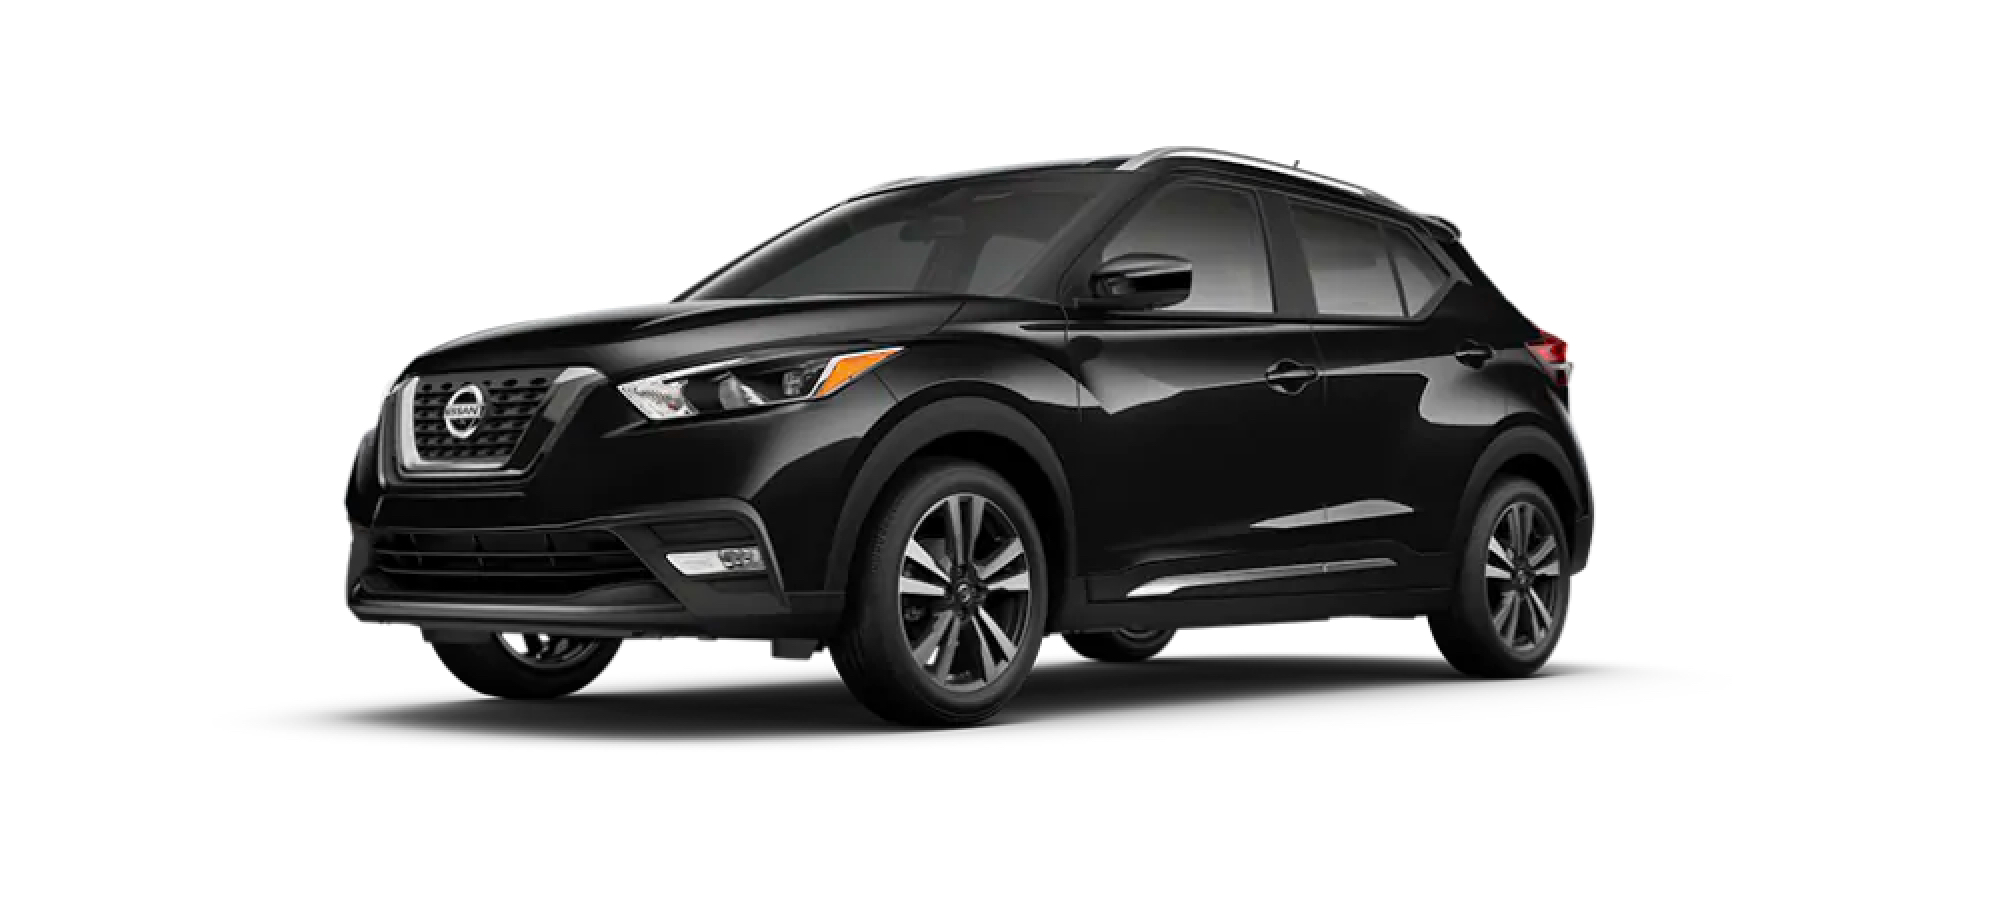 Super Black Nissan Kicks